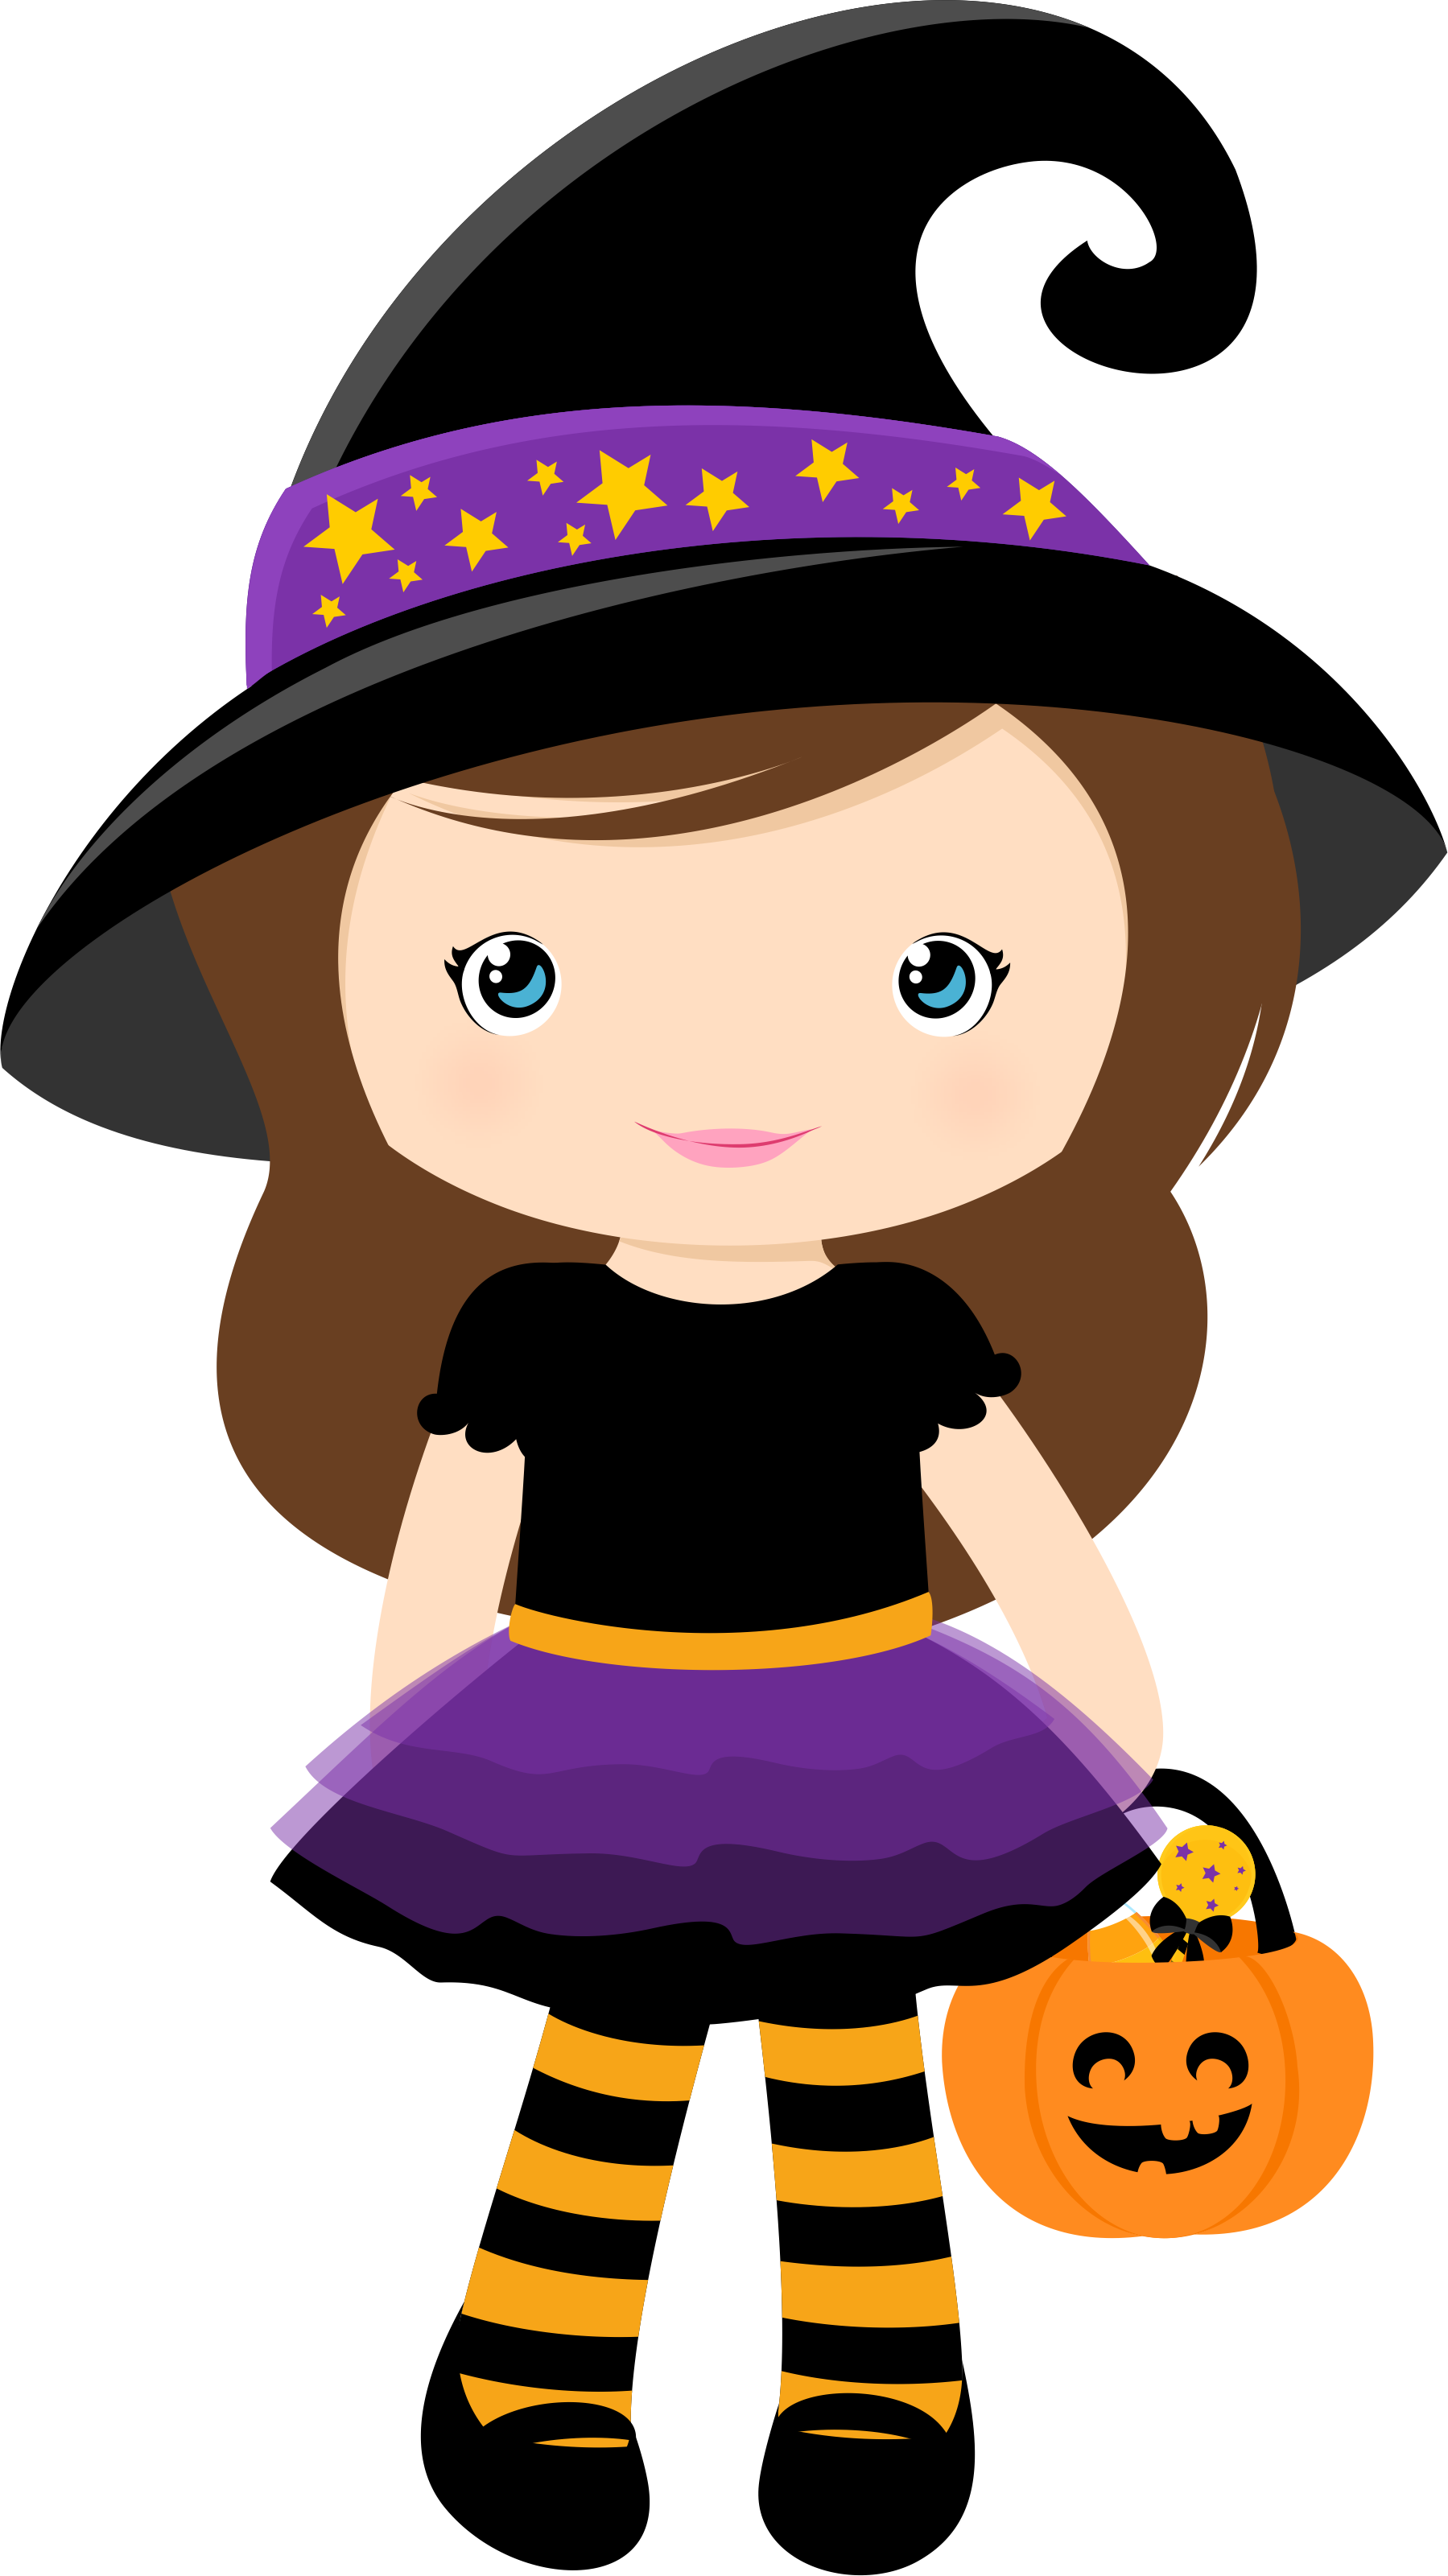 Halloween story clipart svg library stock ☆·.·´¯`·.·☆La Casita de Vero☆·.·´¯`·.·☆: LLego el Hallowen ... svg library stock